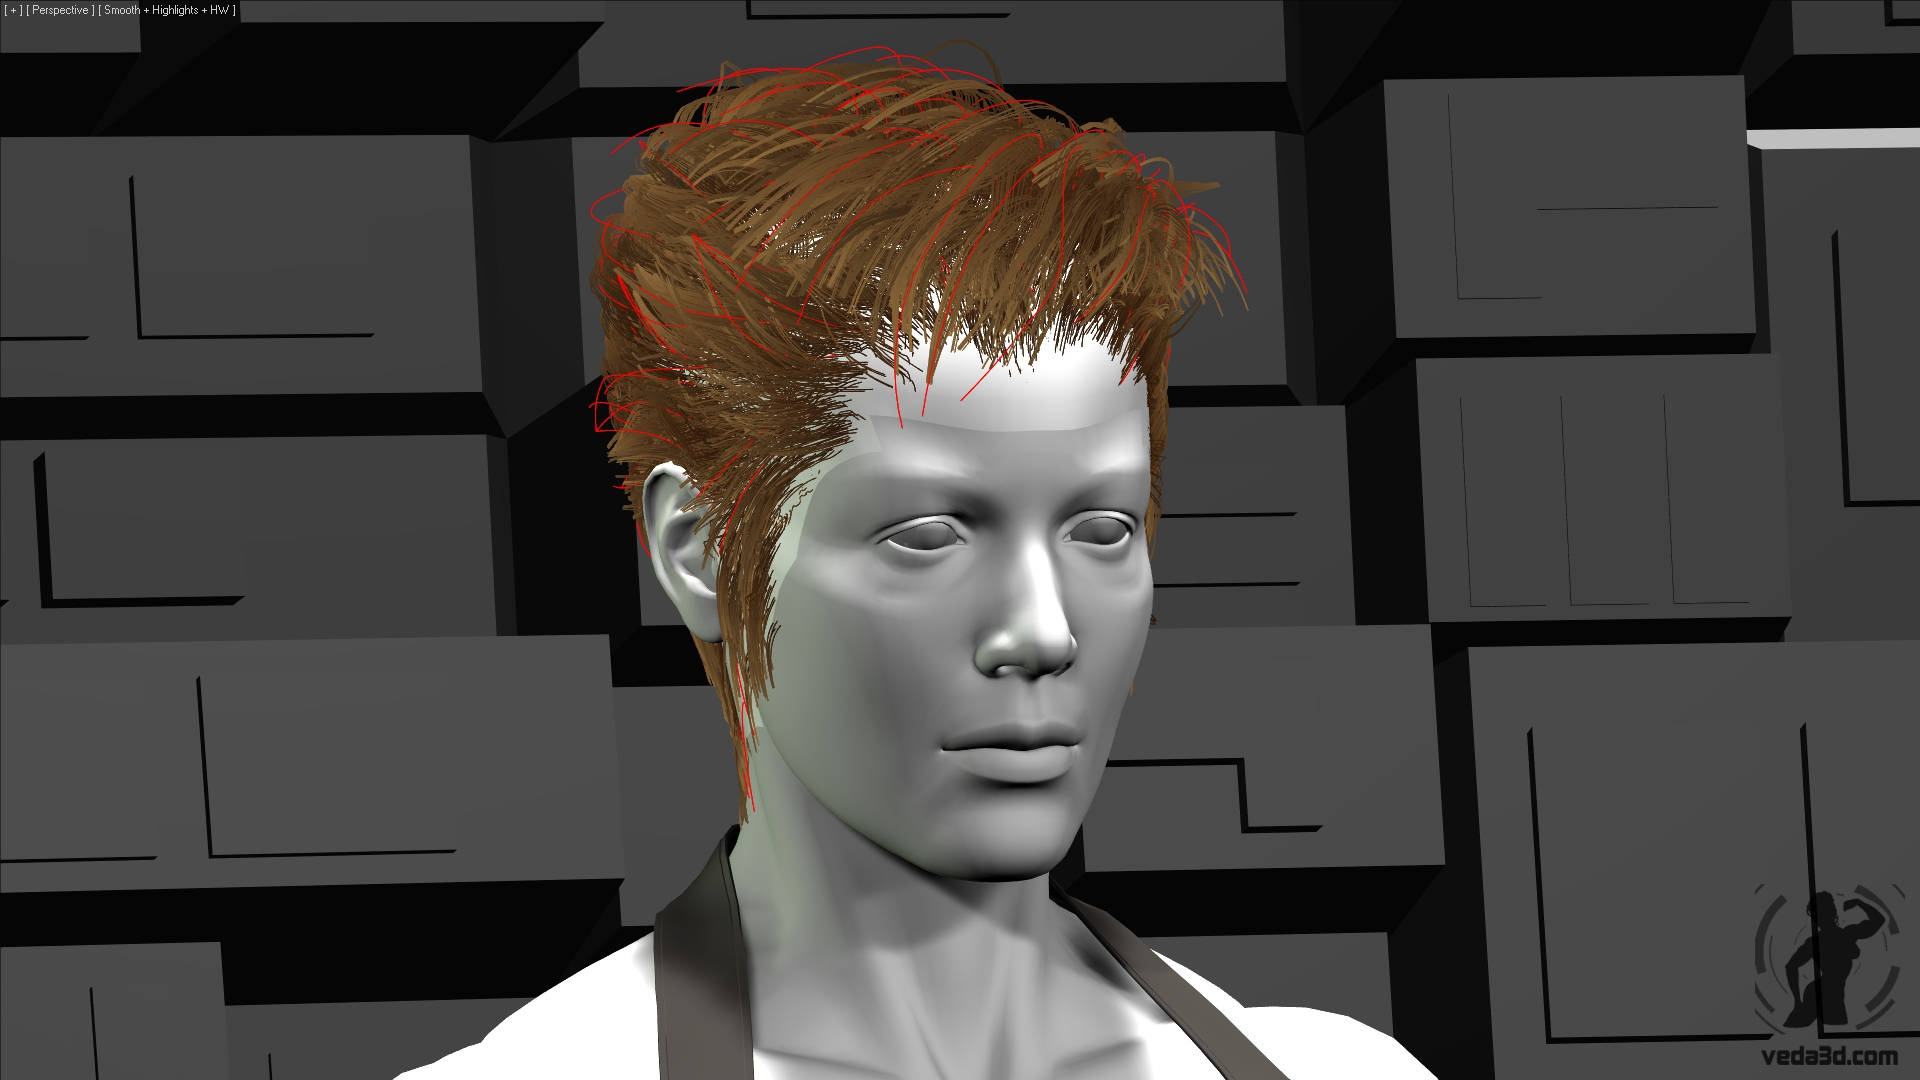 Veda 3d hair - 3ds max's Hair and Fur - Recomb From Splines